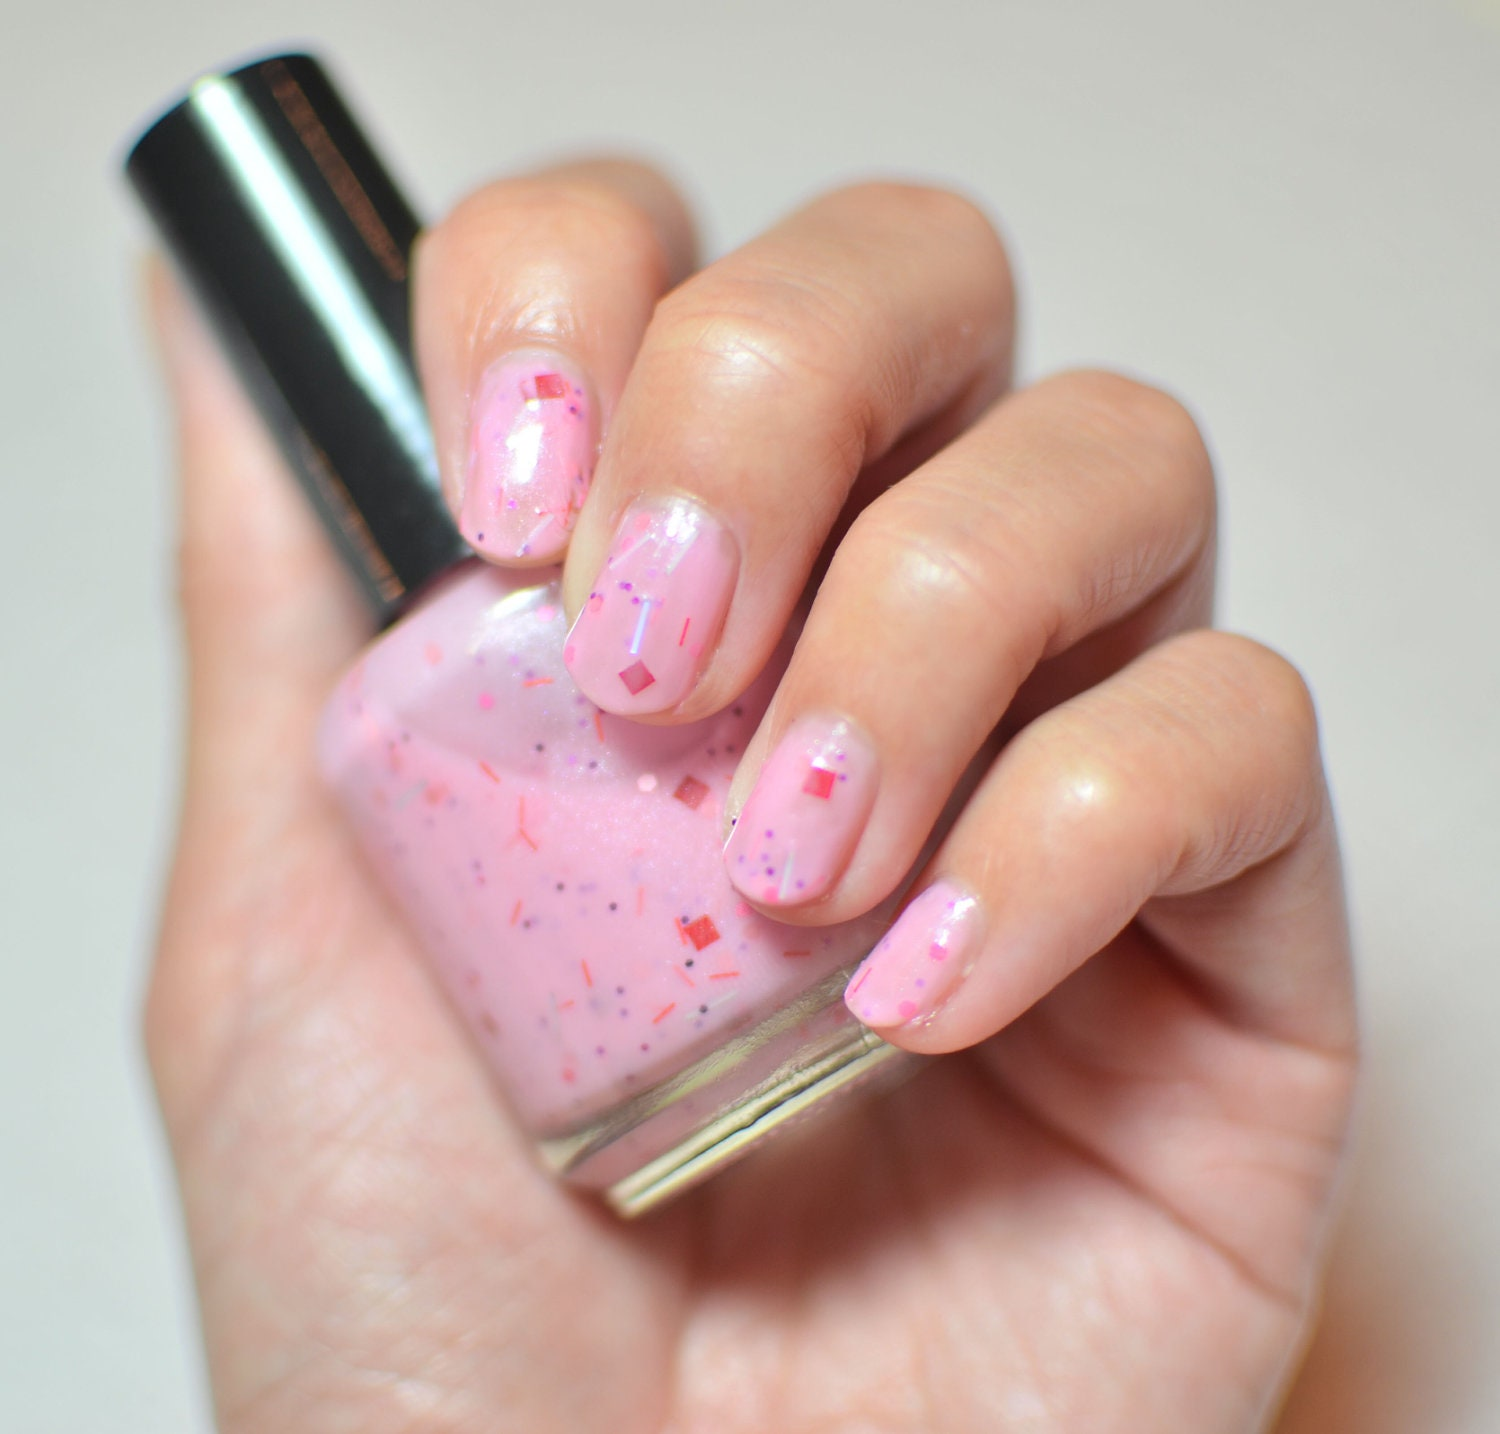 Nail Polish: Fairy Floss - Milky Cotton Candy Pink with Glitters